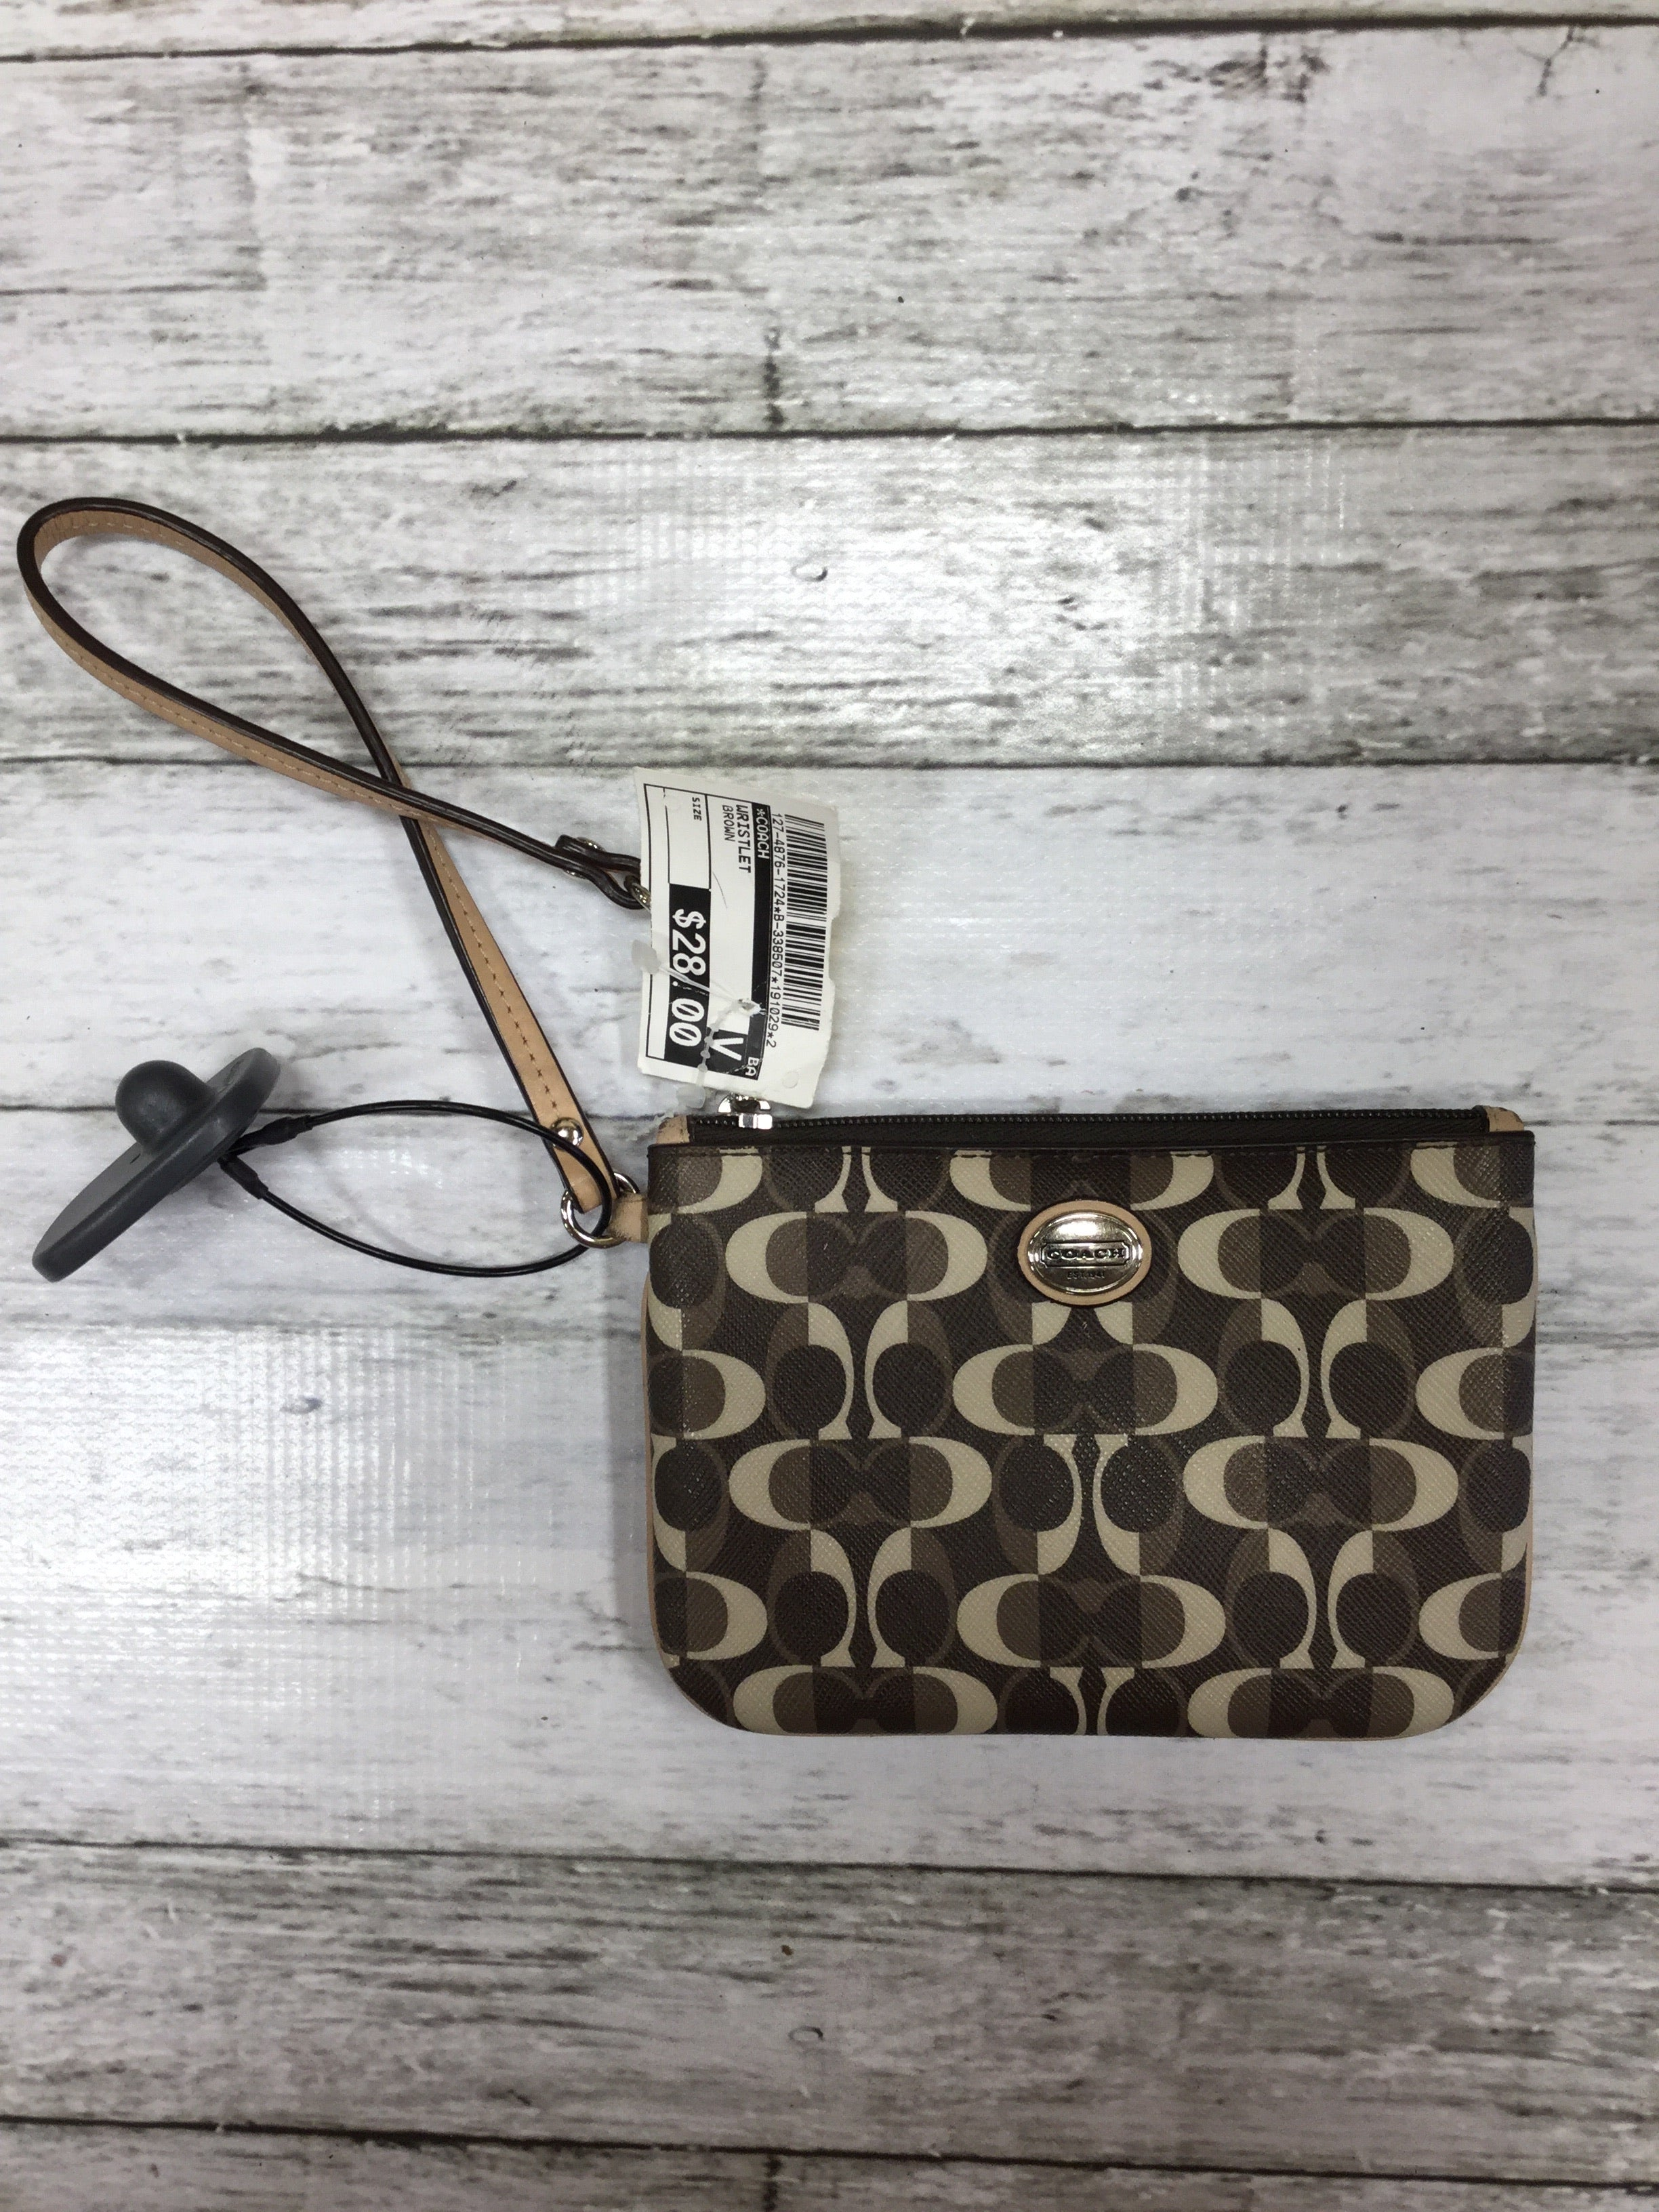 Primary Photo - BRAND: COACH , STYLE: WRISTLET , COLOR: BROWN , SKU: 127-4876-1724